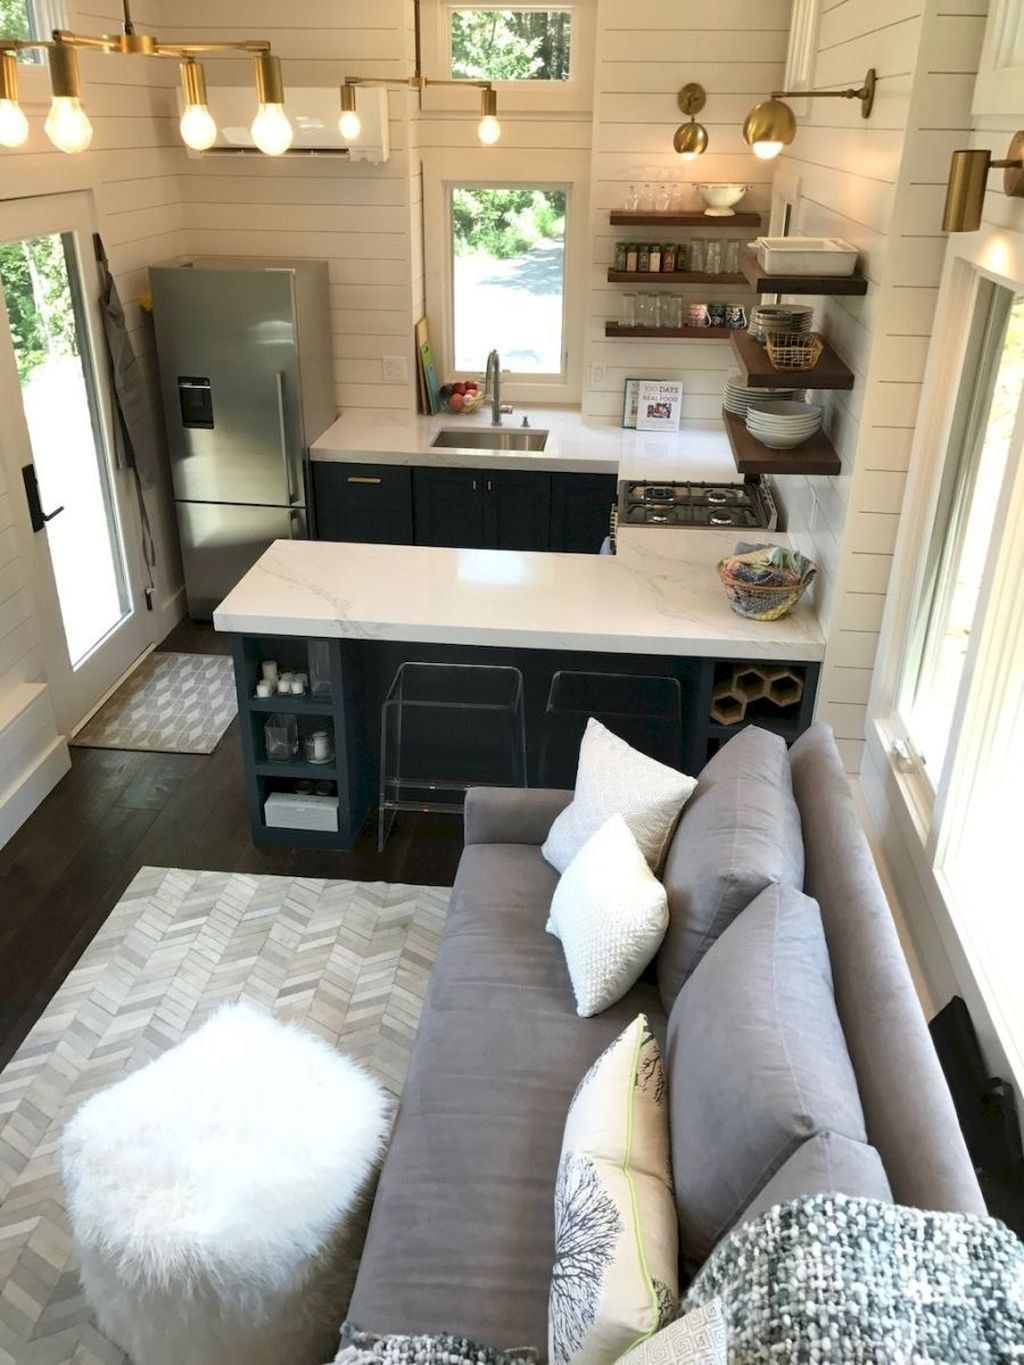 Cute Tiny House Ideas Organization Tips 11 For Inside A Tiny Home